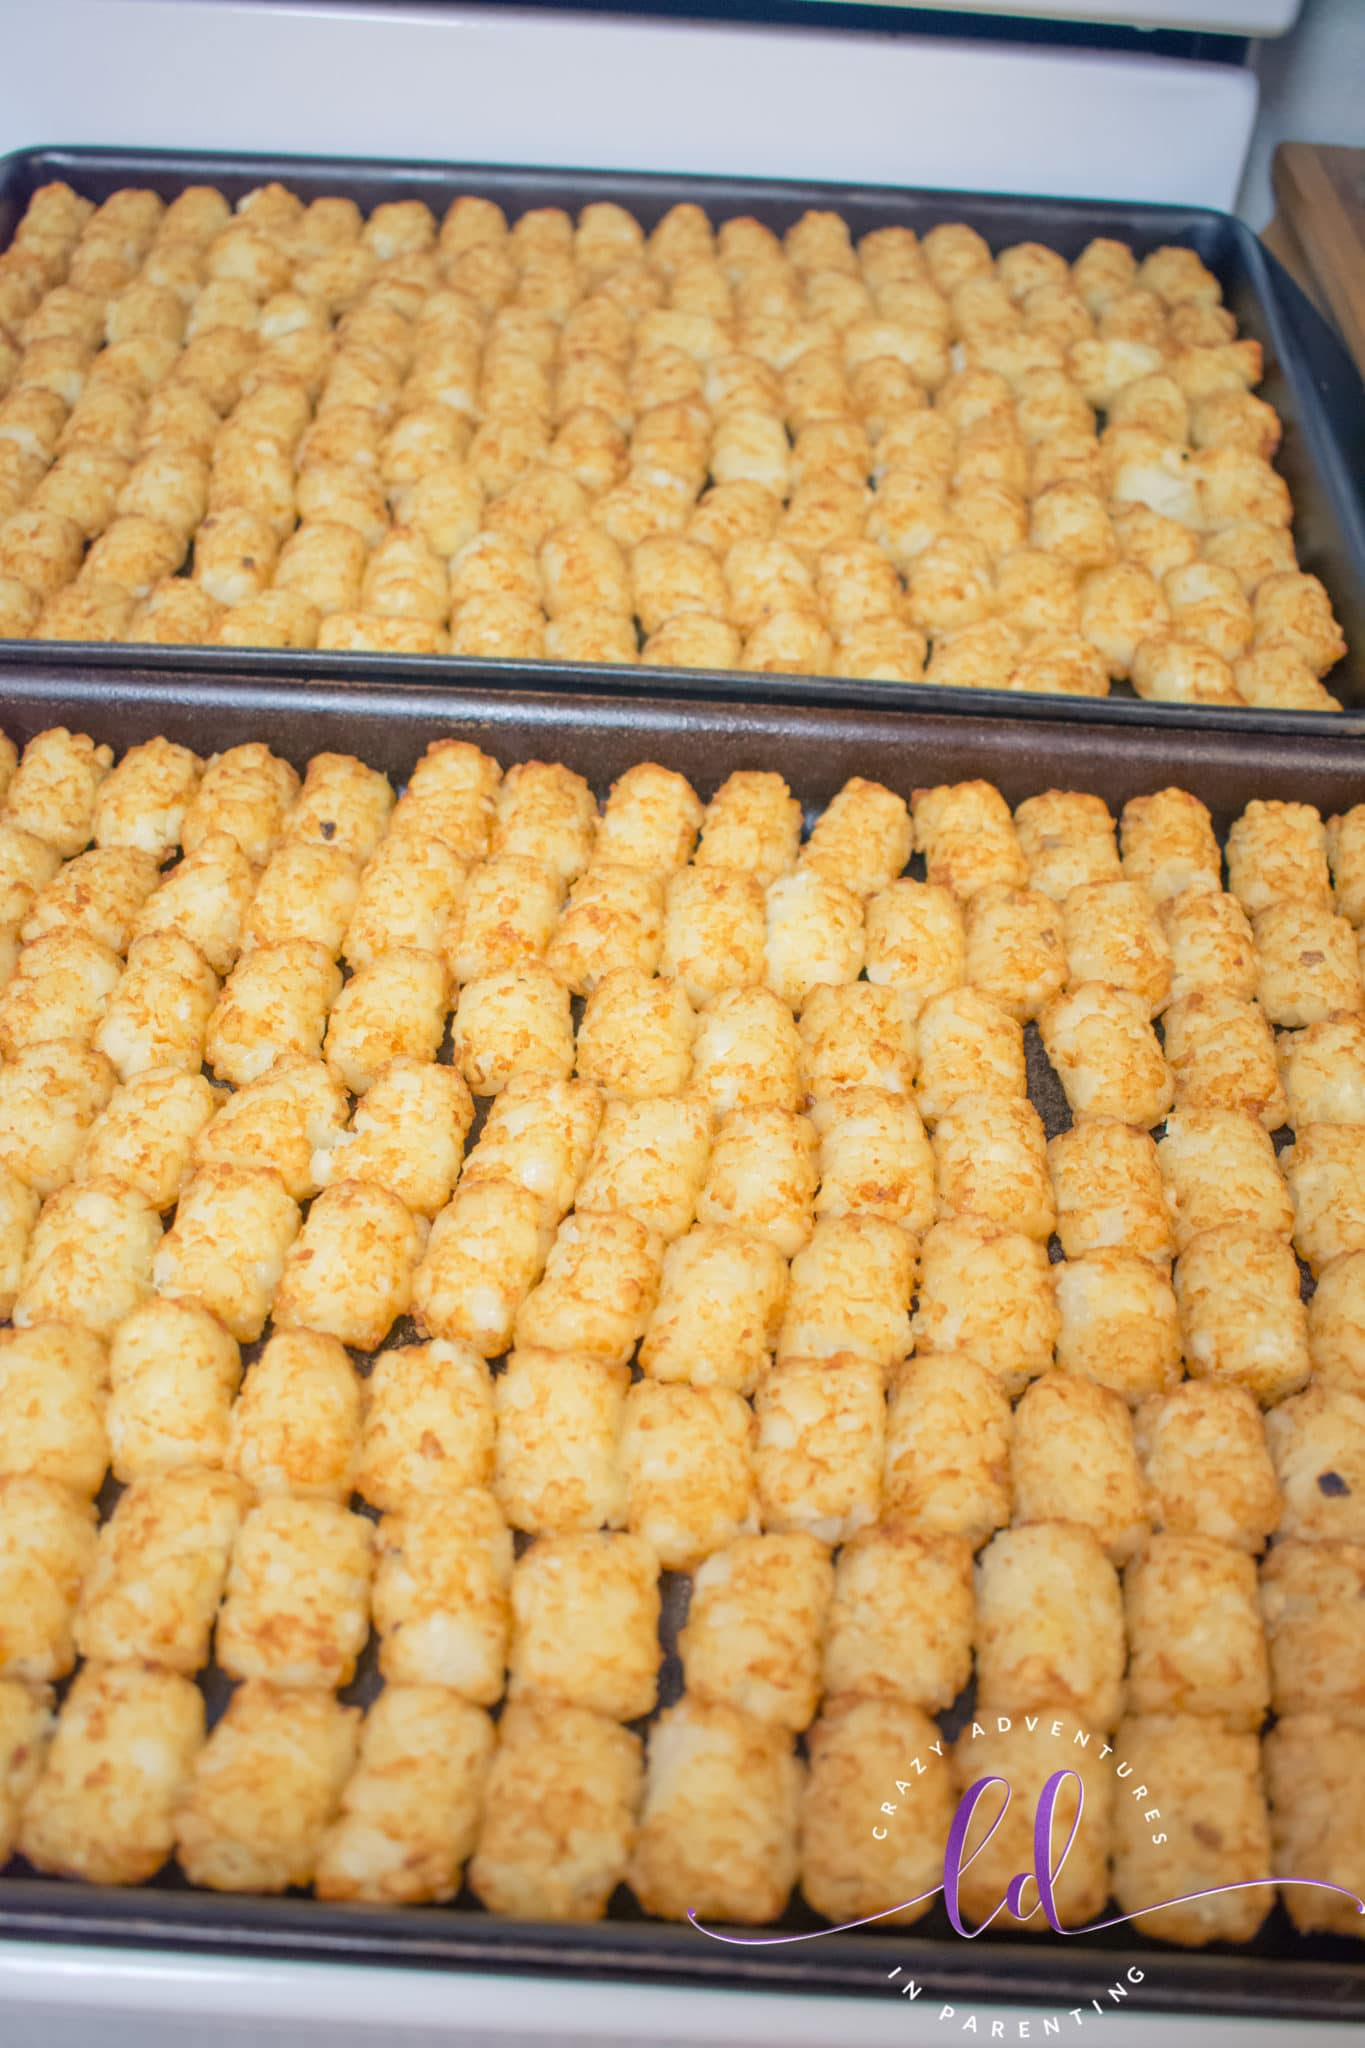 Heated Tater Tots Ready to Make Beef Totchos Tater Tot Nachos